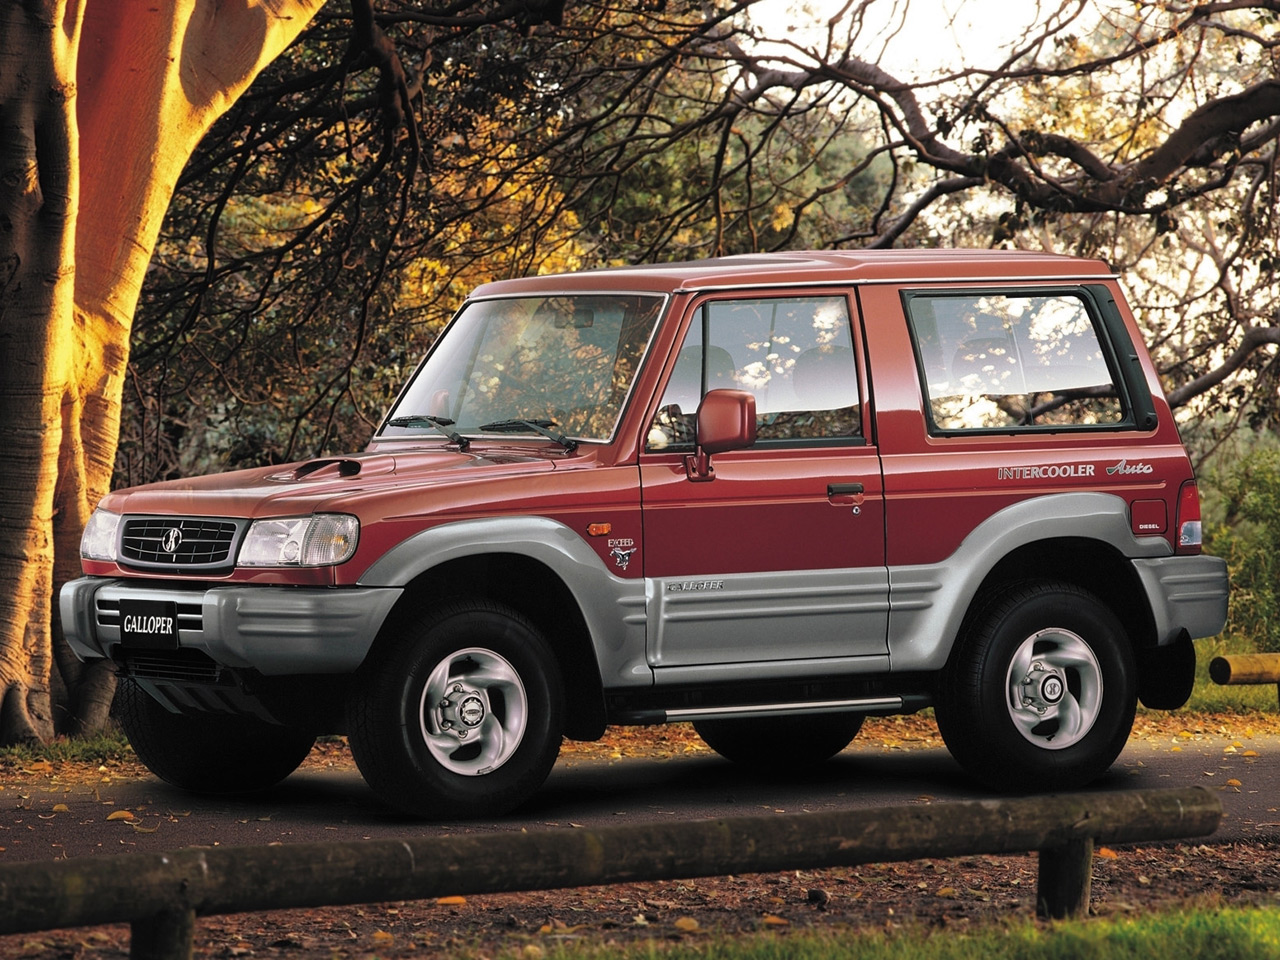 Galloper Cars Specifications Technical Data